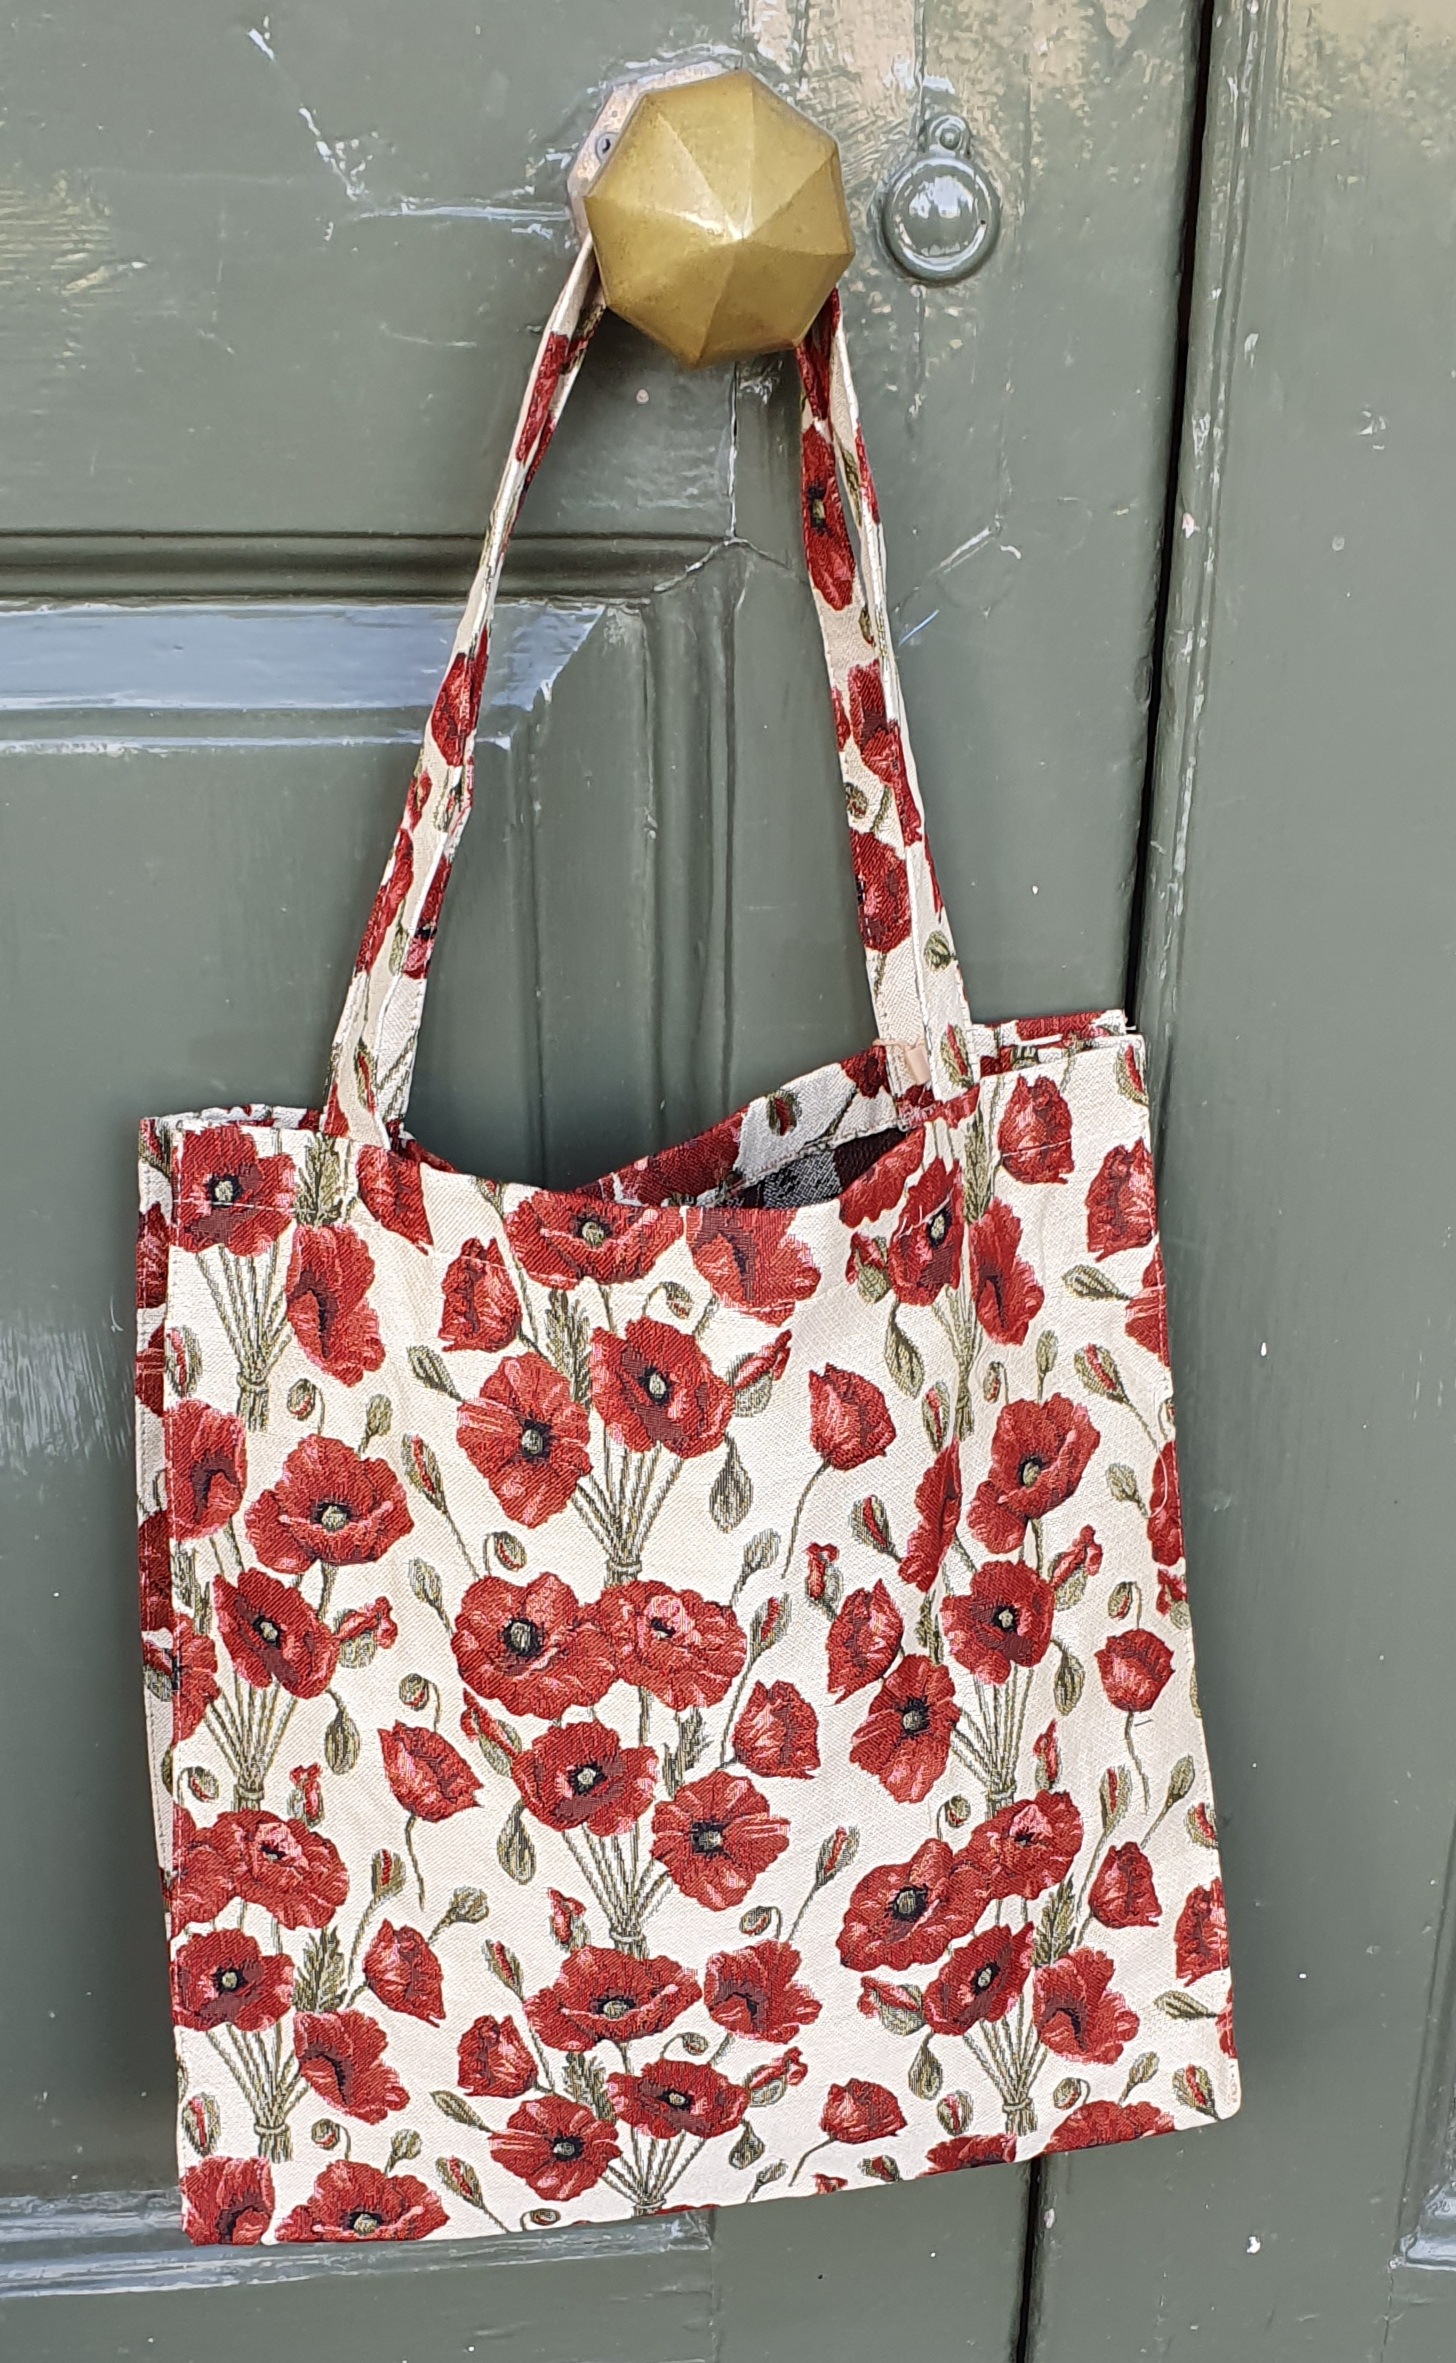 Poppy Bag Gusset